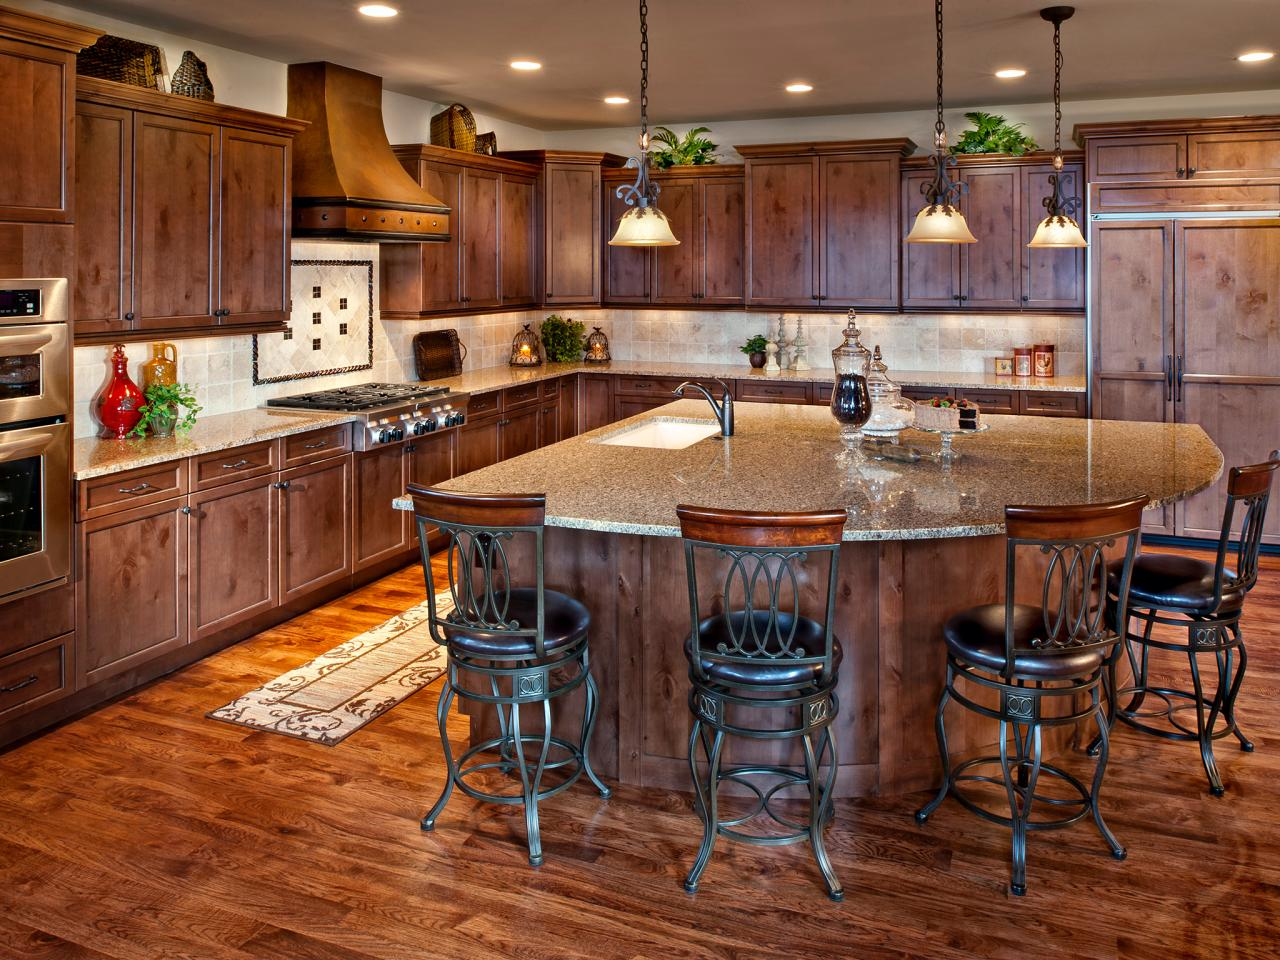 Italian kitchen design pictures ideas tips from hgtv for Kitchen island cabinet plans